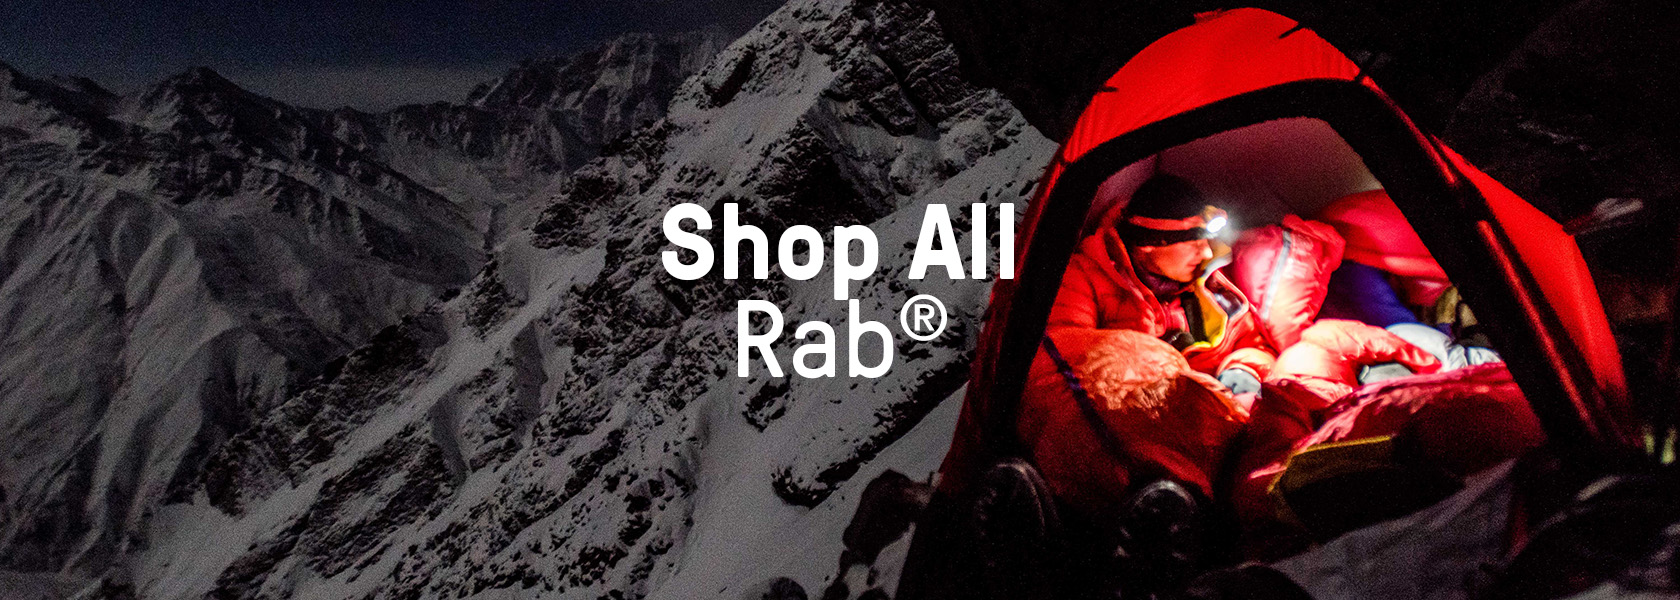 Man in tent keeping warm with Rab gear.